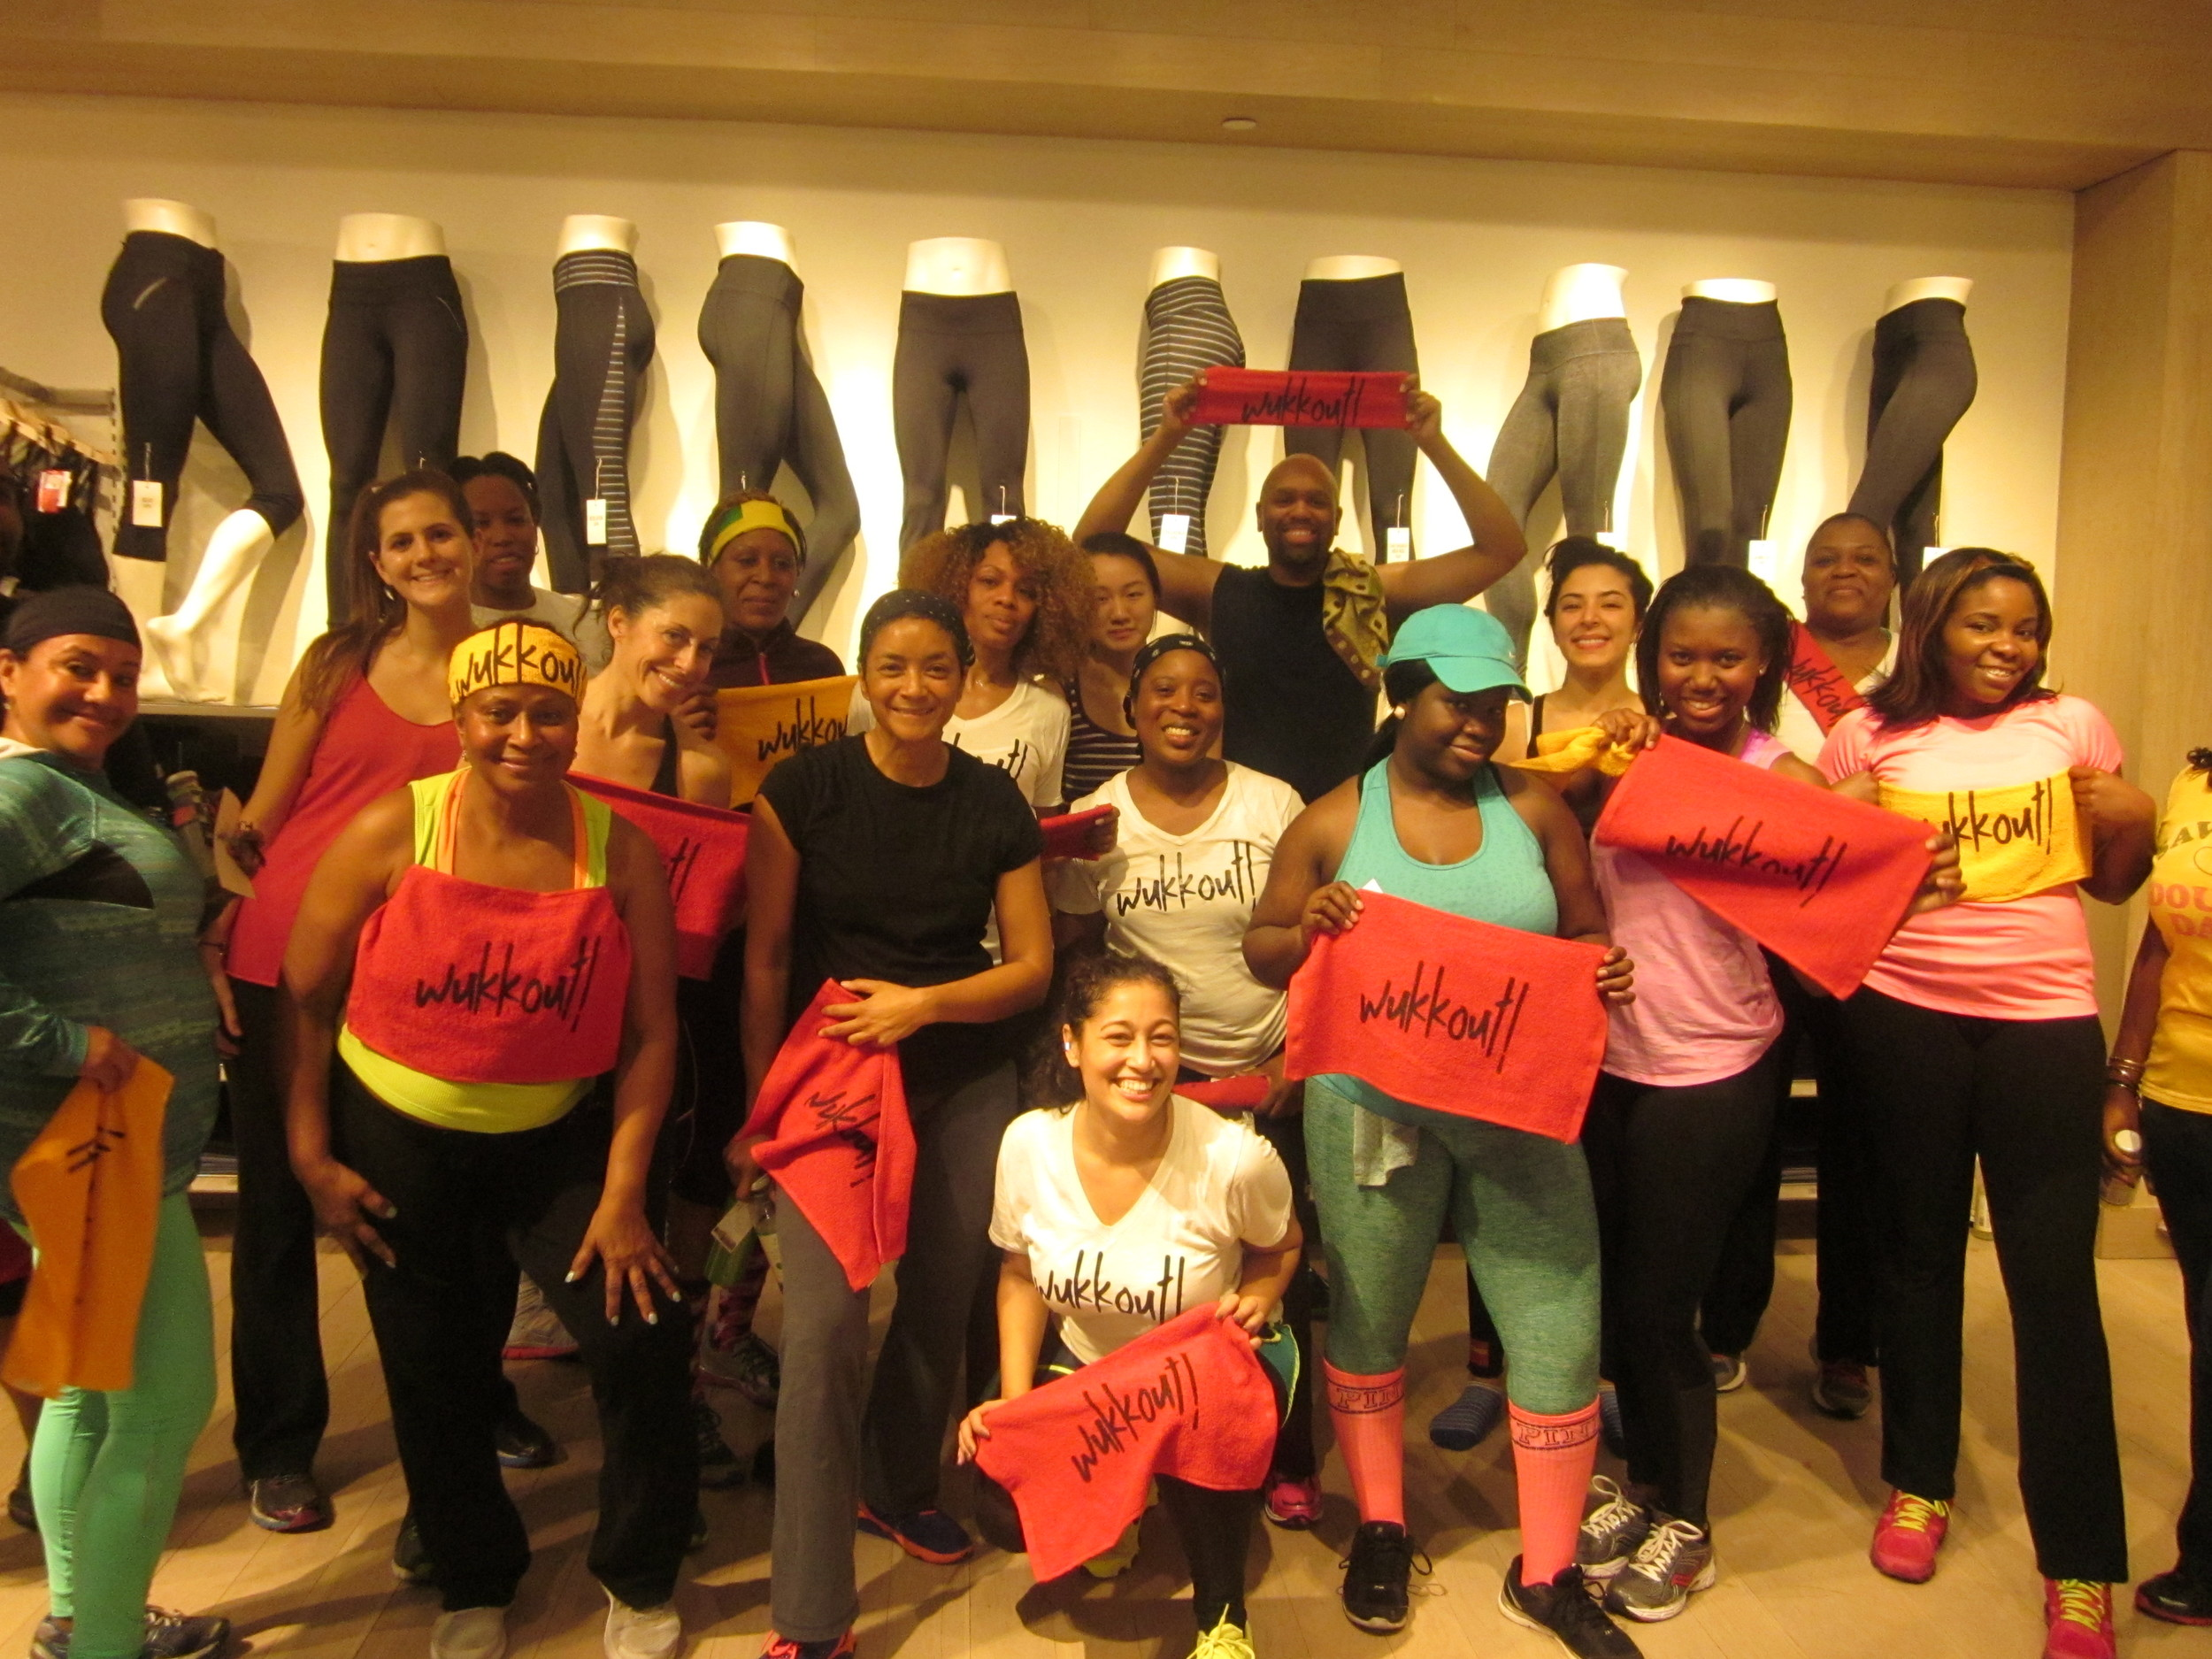 Wukkout!® at Athleta Flatiron - January 2015